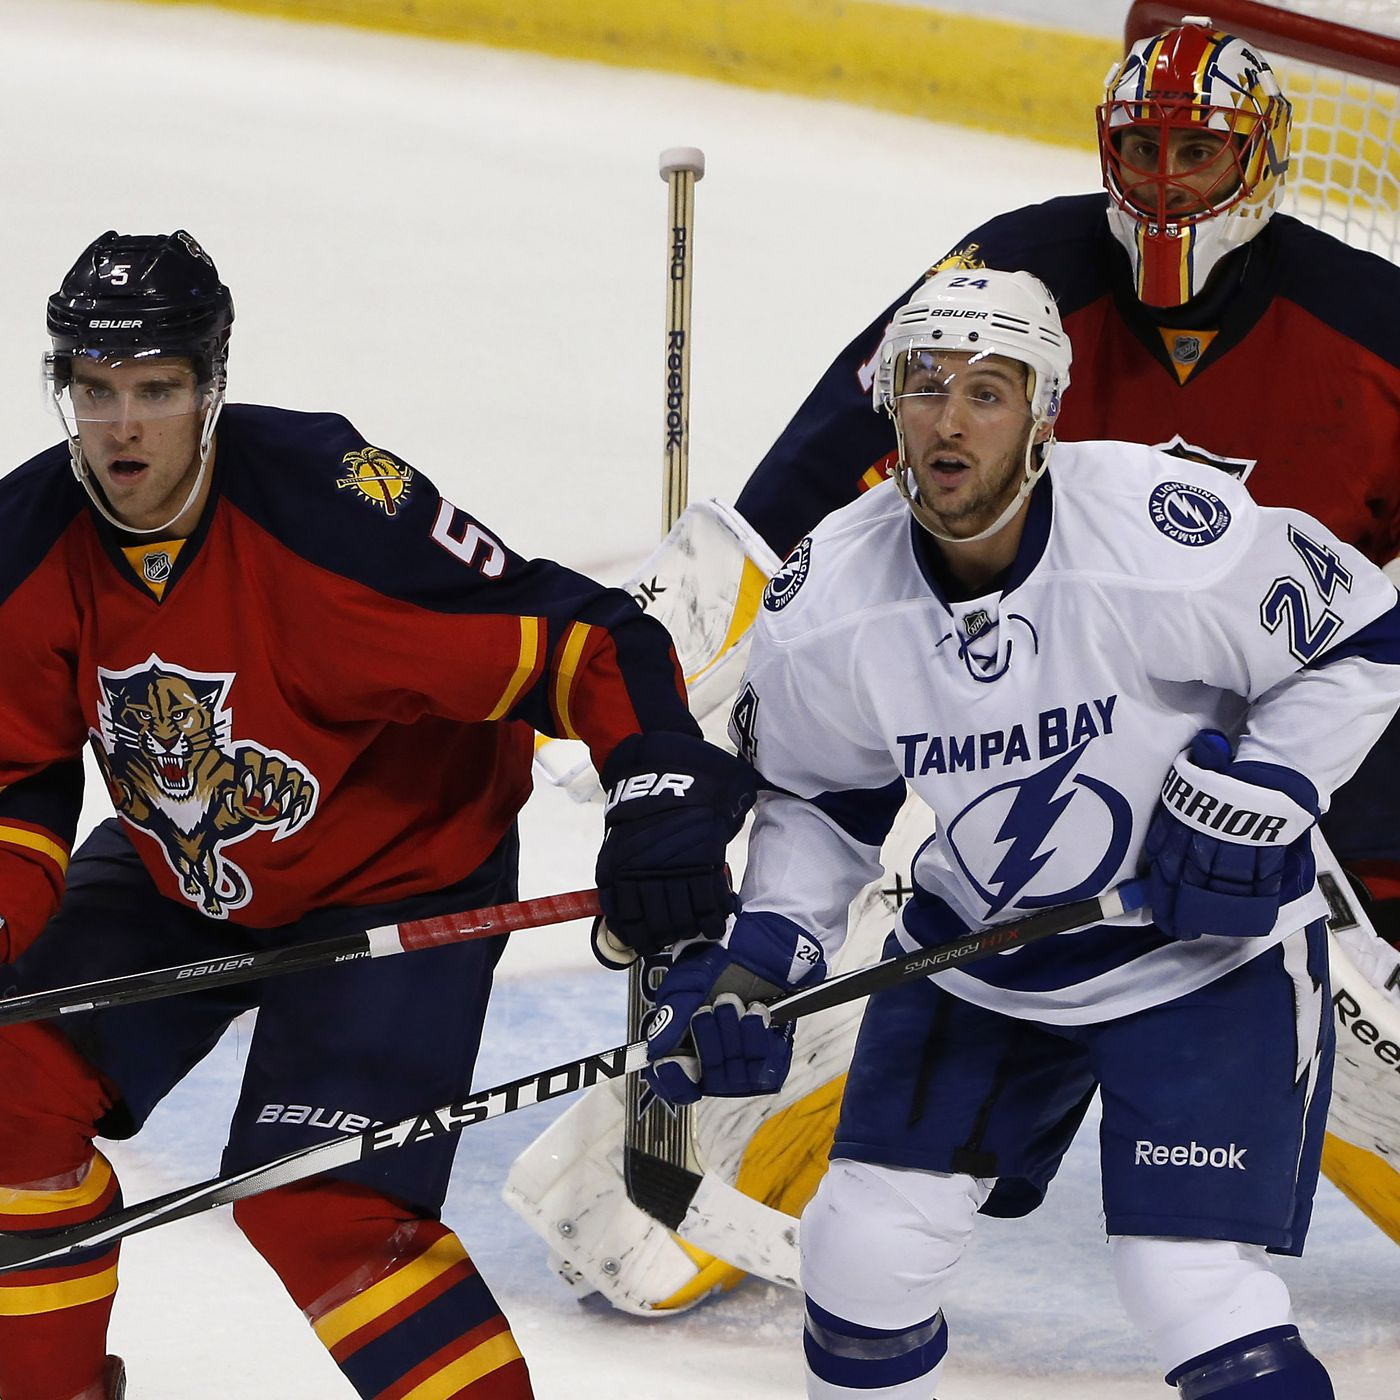 dbba77238ea The potential for a rare event  Tampa Bay Lightning at Florida Panthers  preview